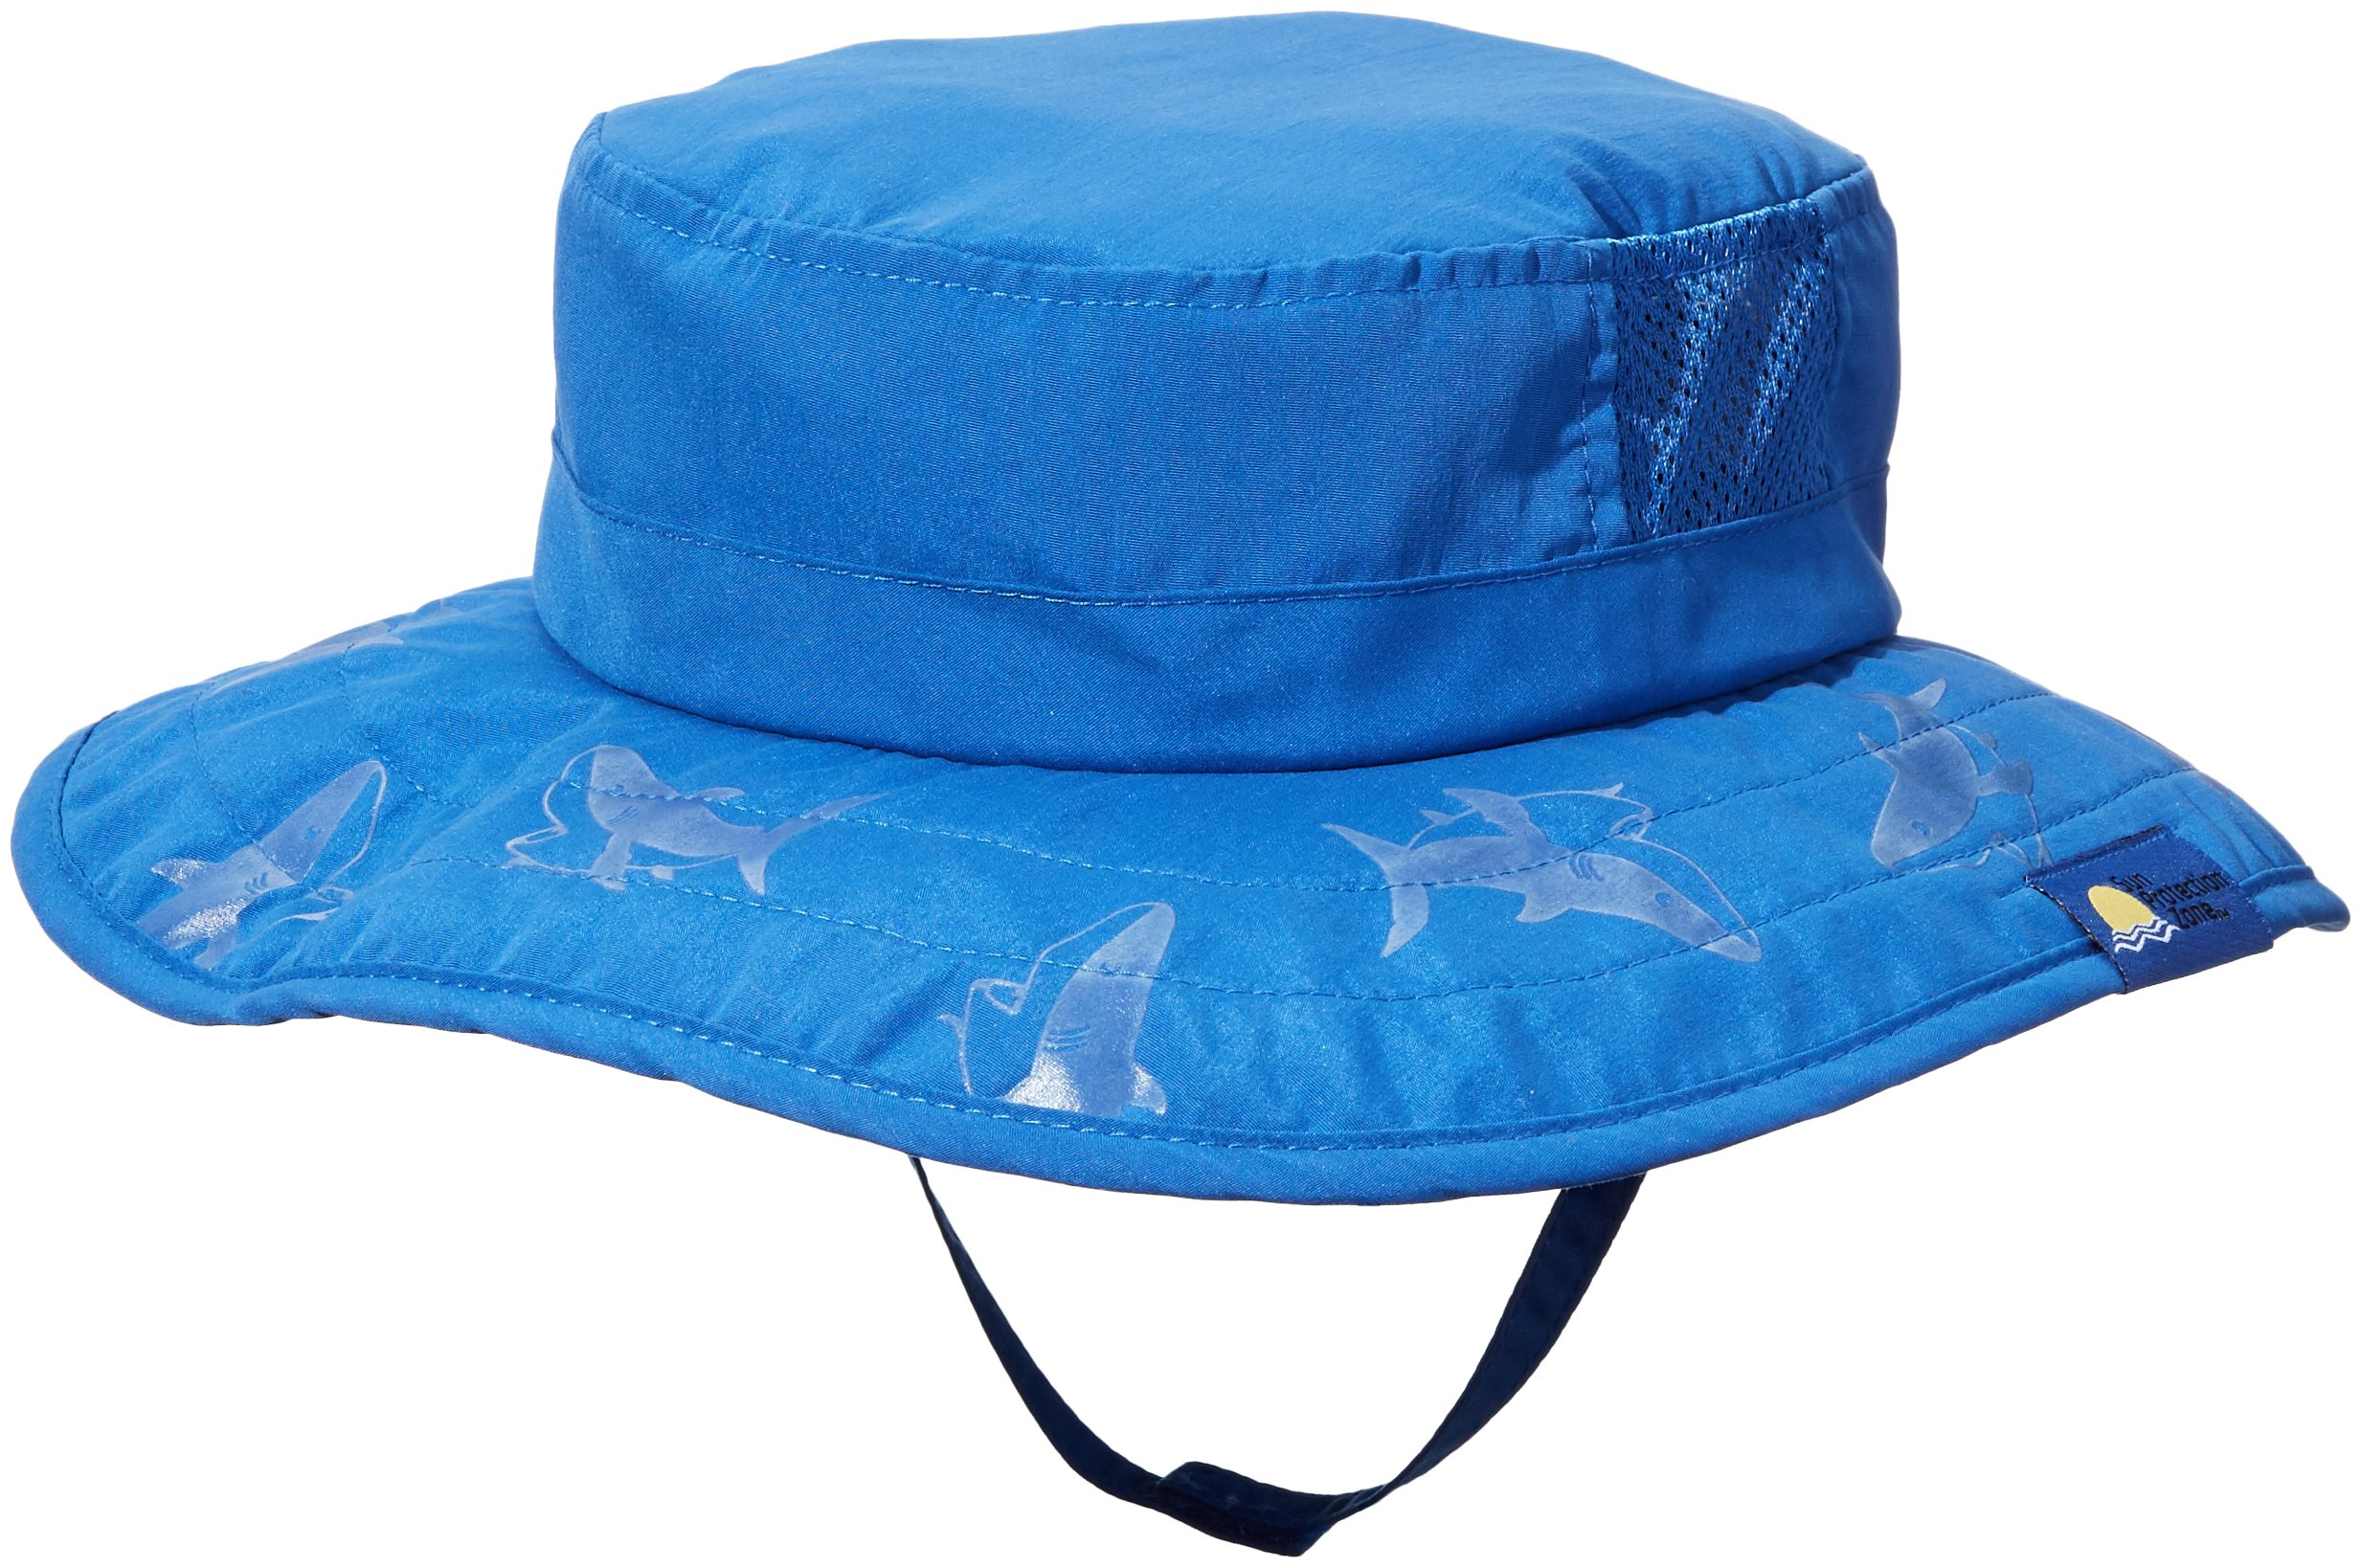 2pk Kids Safari Hat Sun Protective Zone UPF 50+ Child Block UV Rays Shade 938151 Blue Boys Fits most children ages 3-10